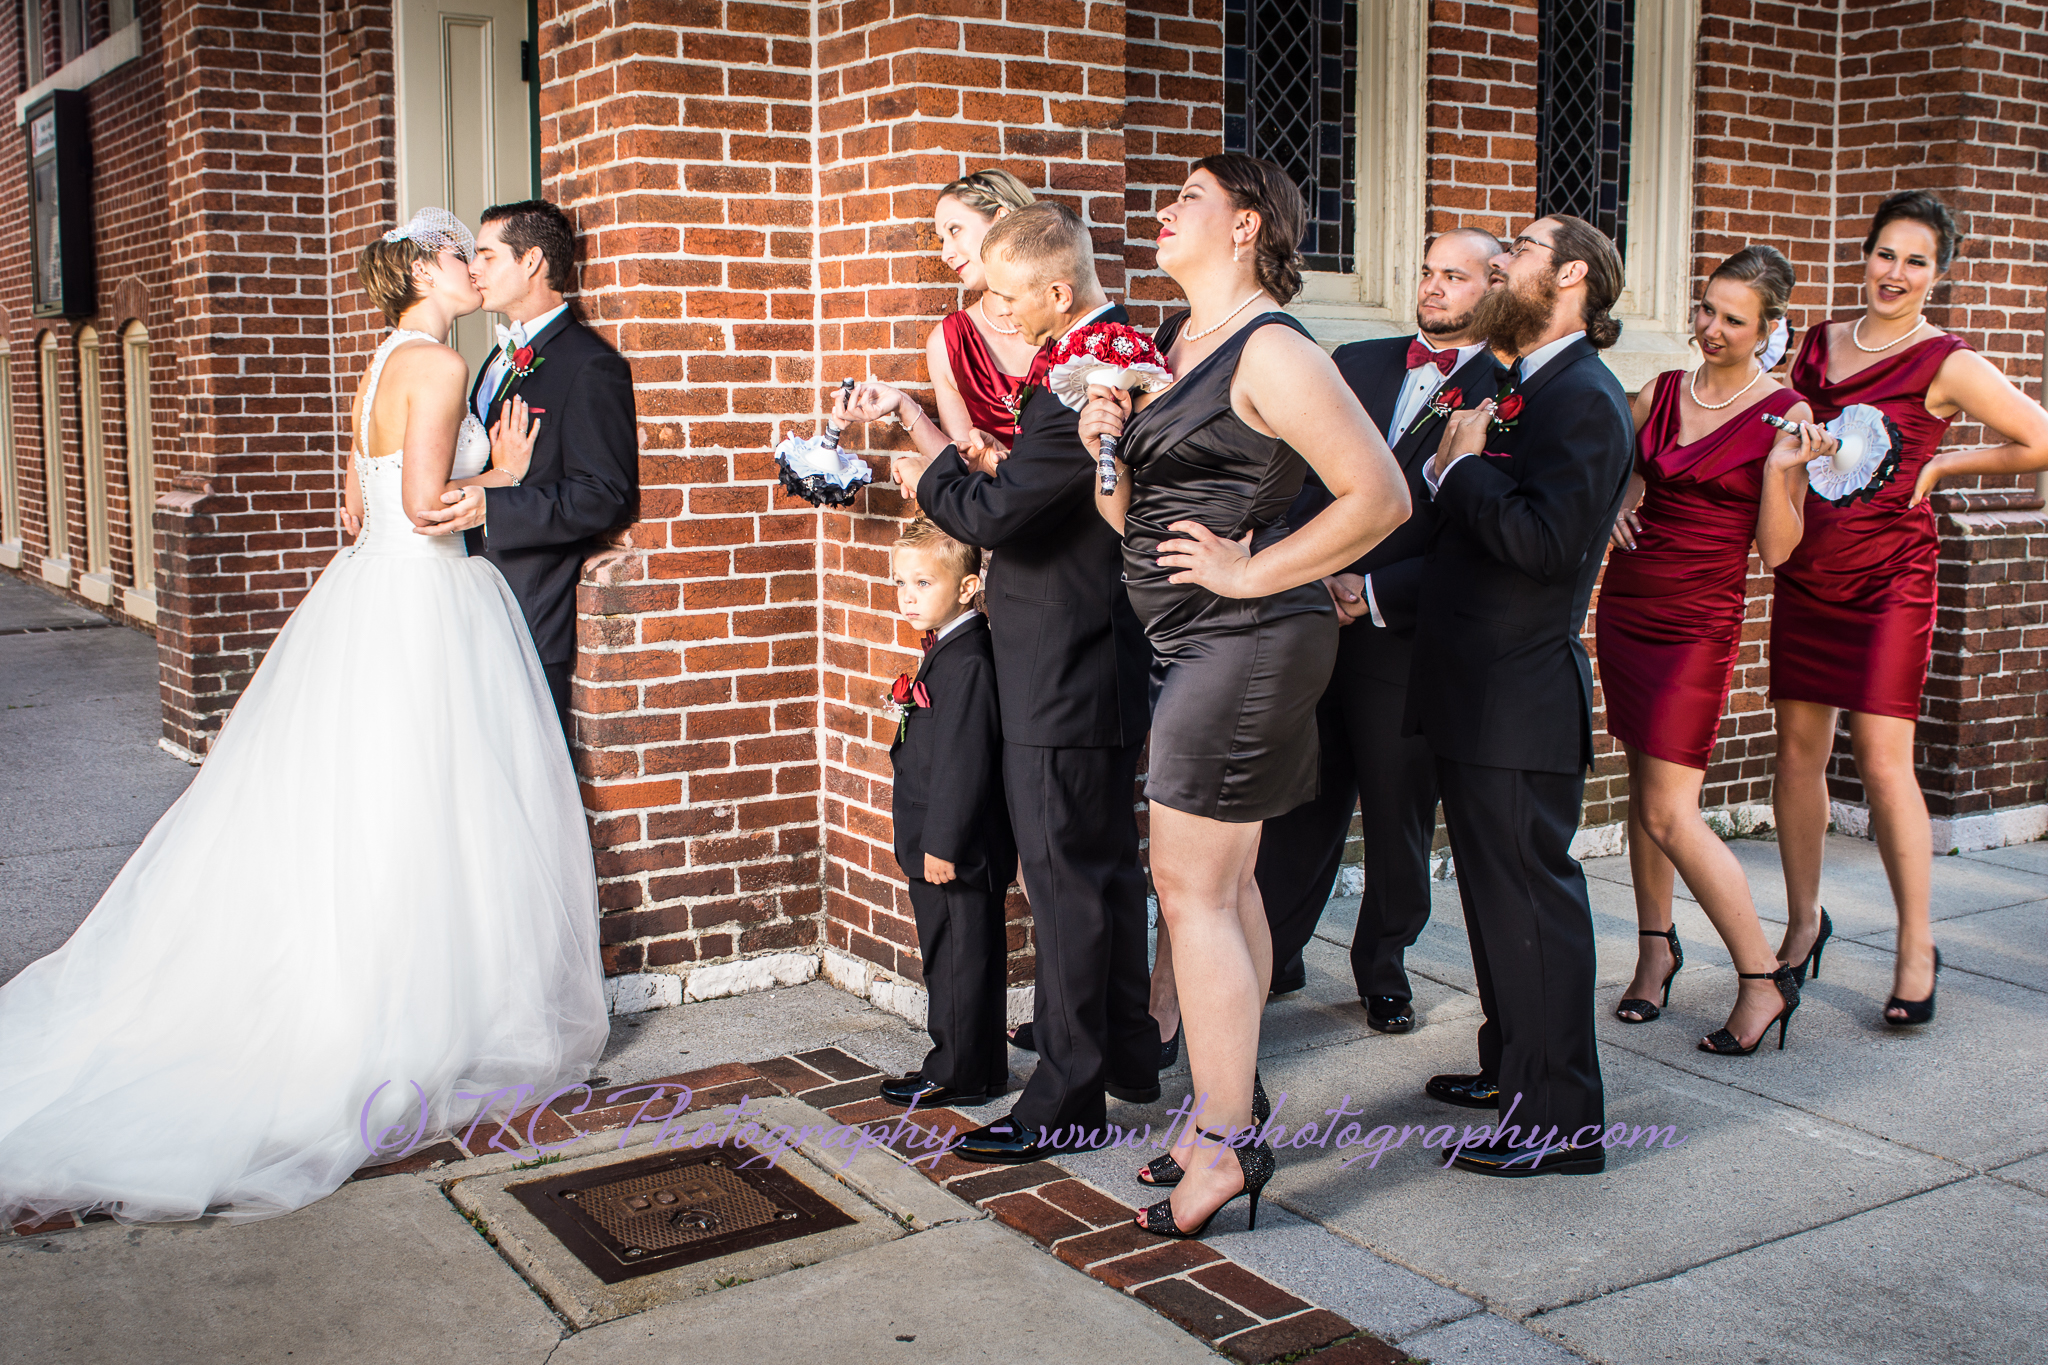 Beautiful wedding photography in Martinsburg WV